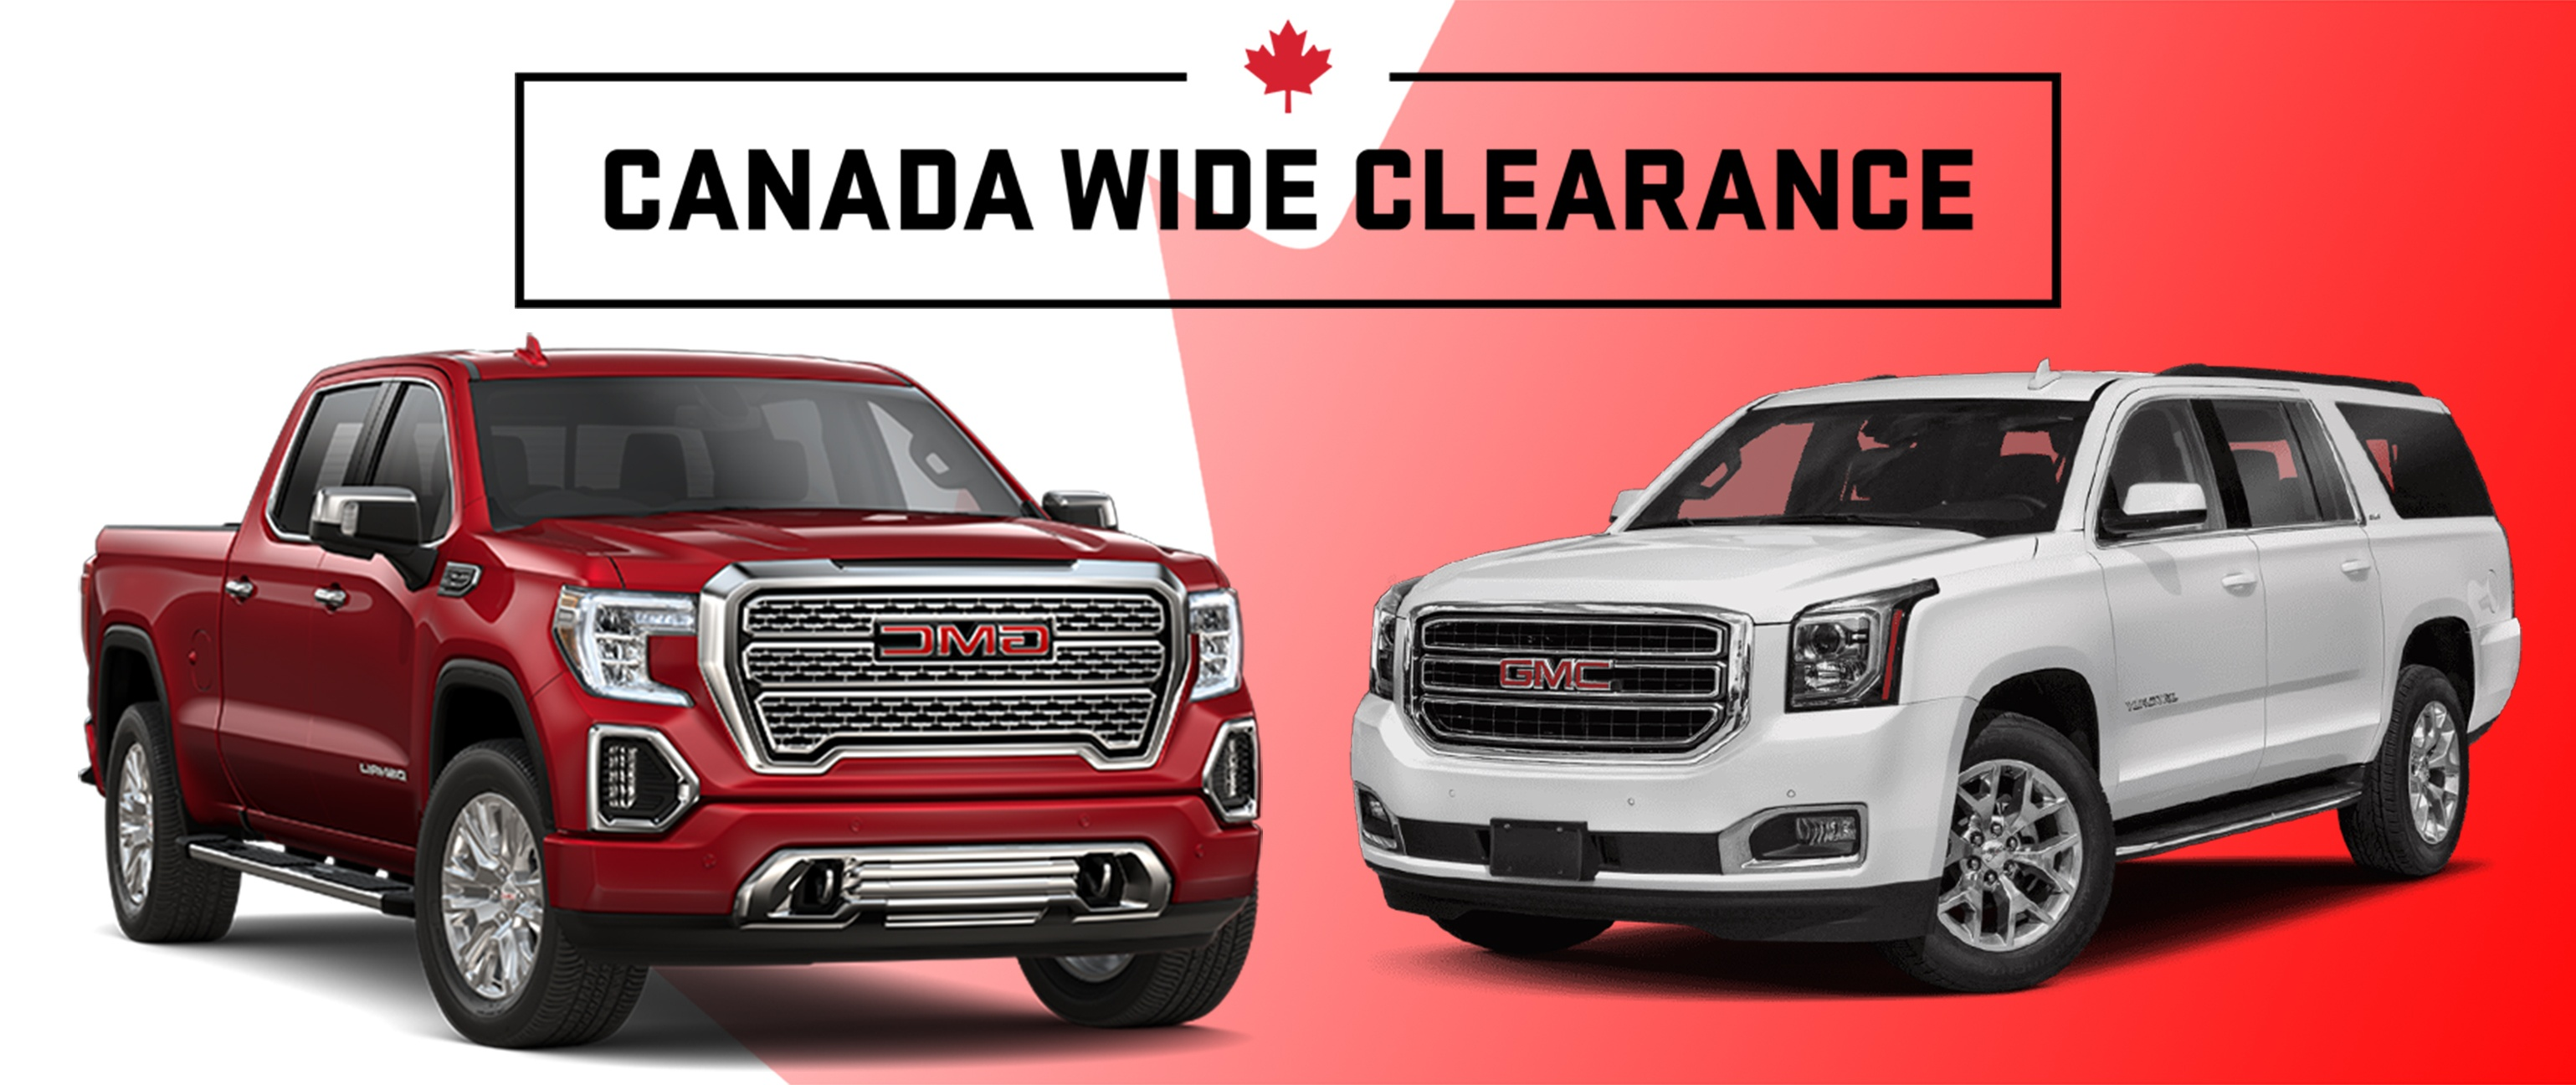 GMC CANADA WIDE CLEARANCE